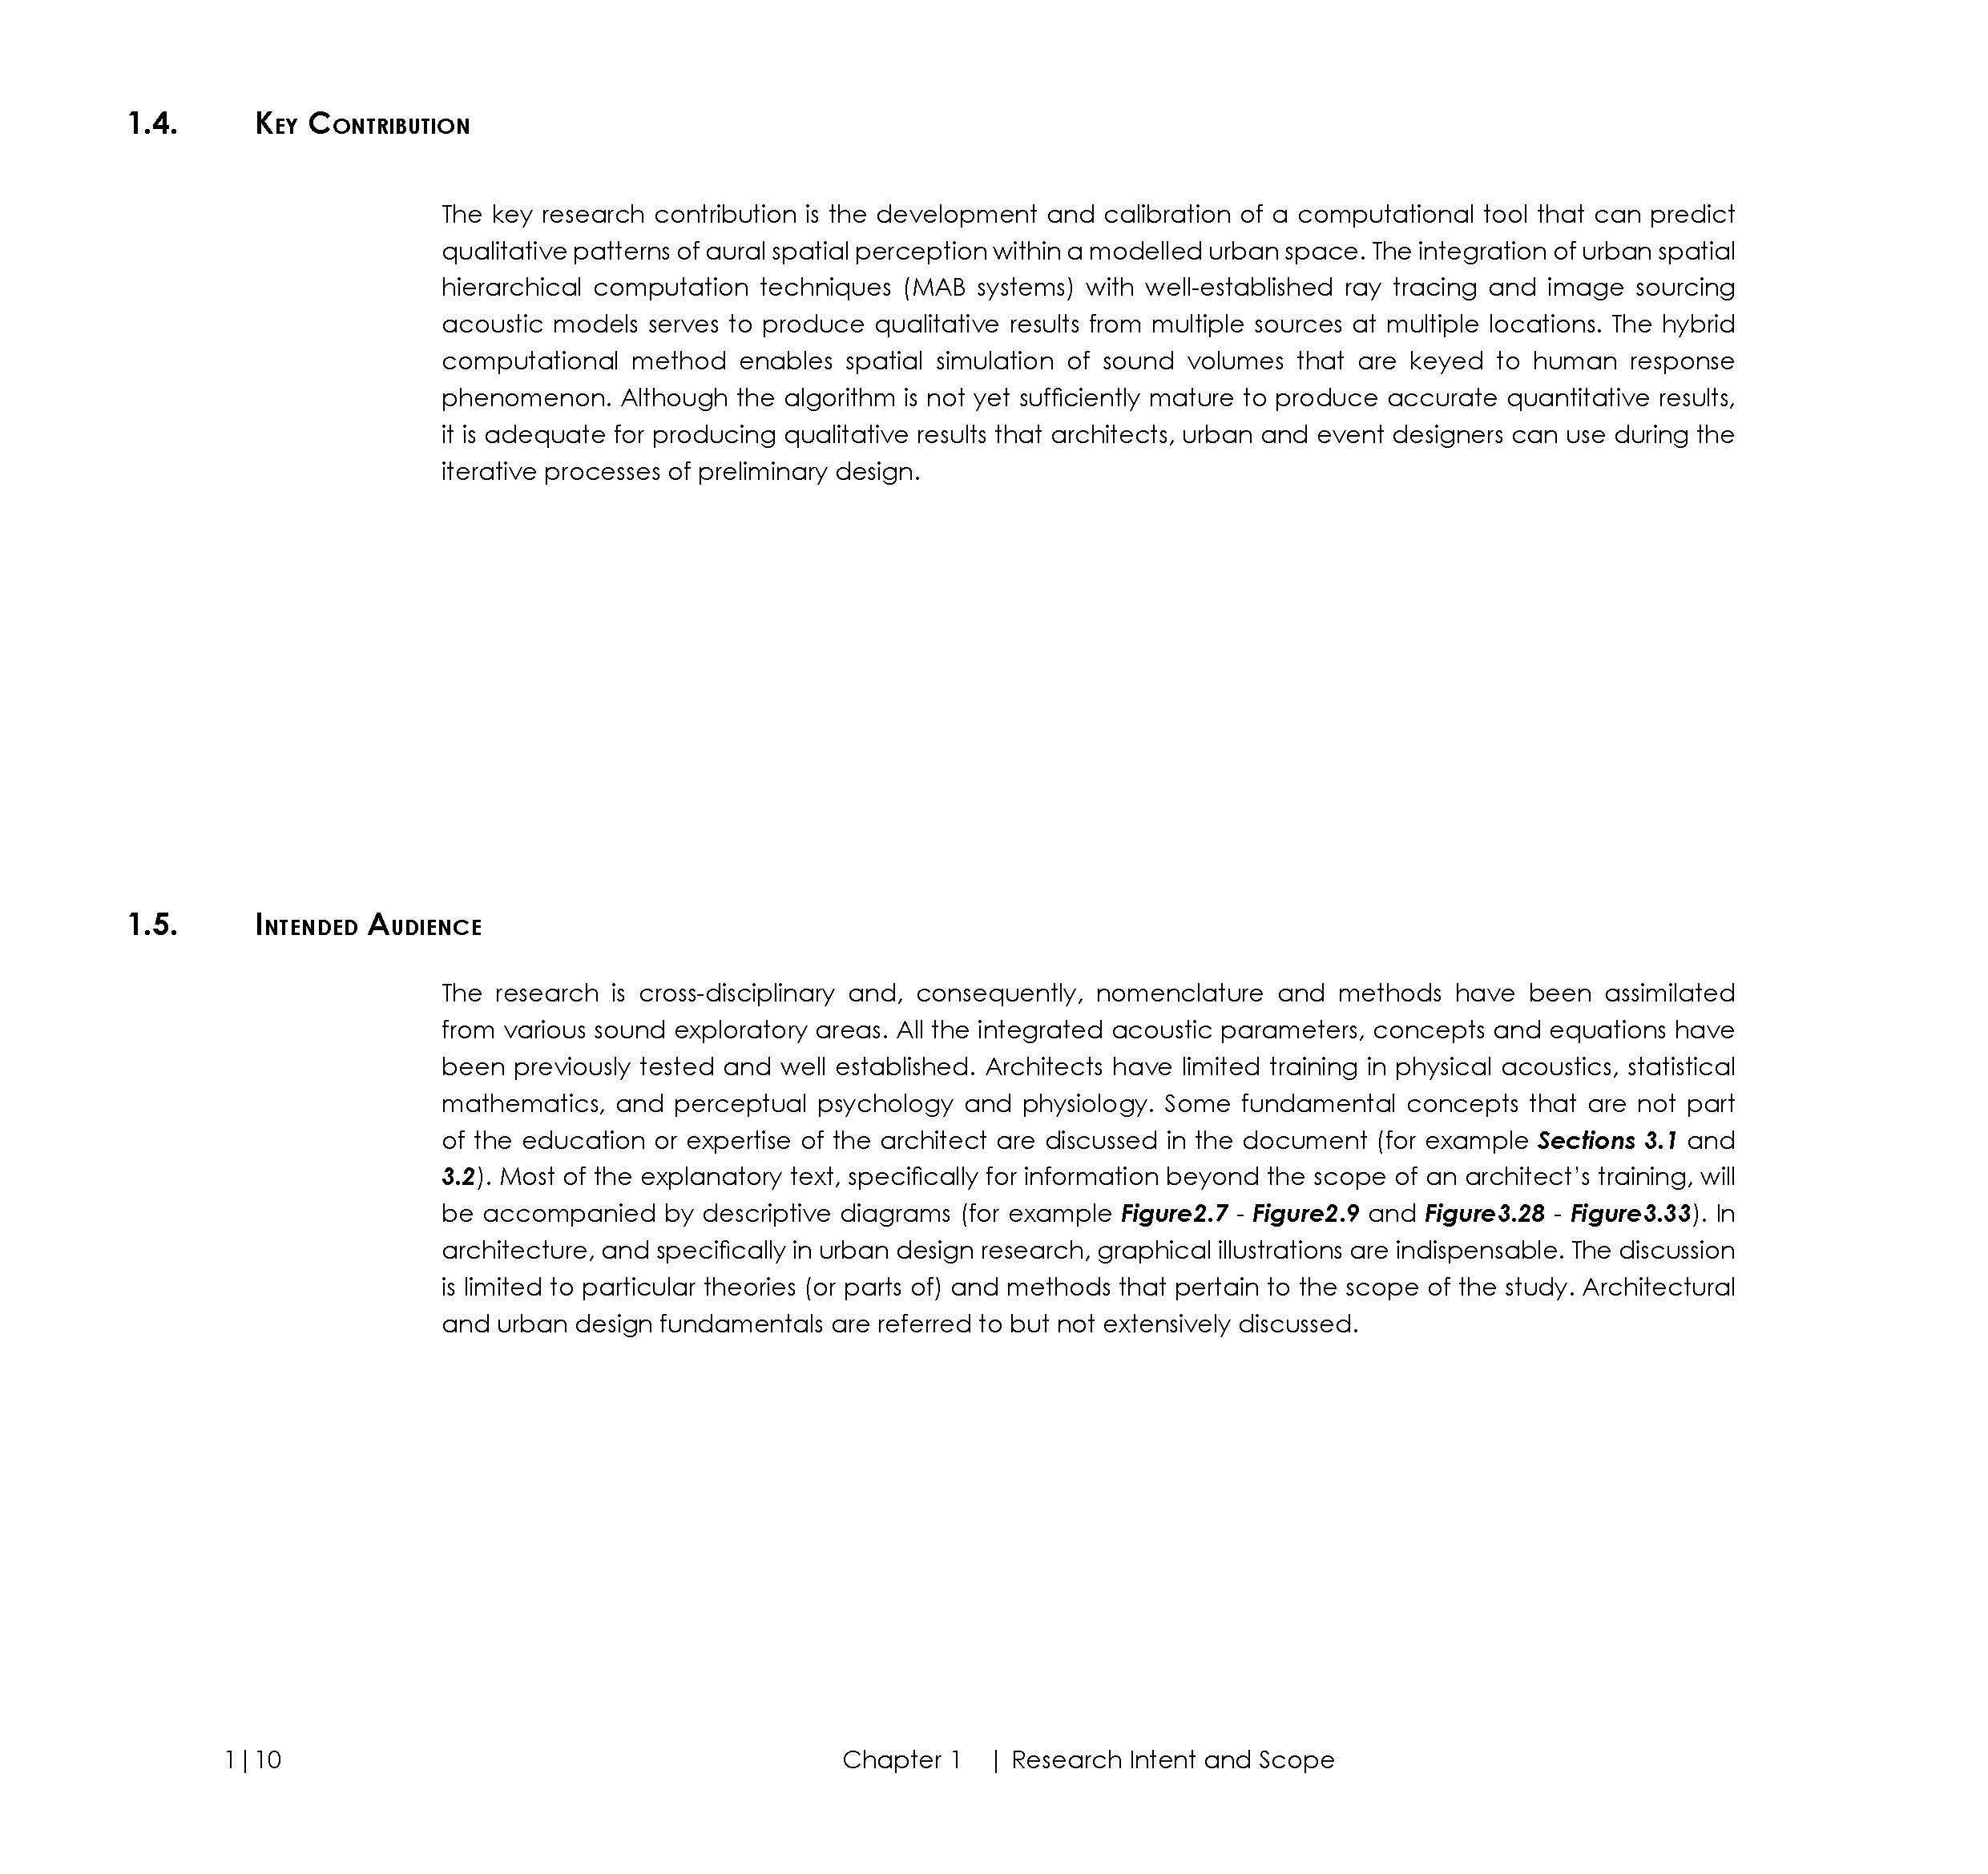 16.03.03_Thesis_01_Interactive_Page_046.jpg